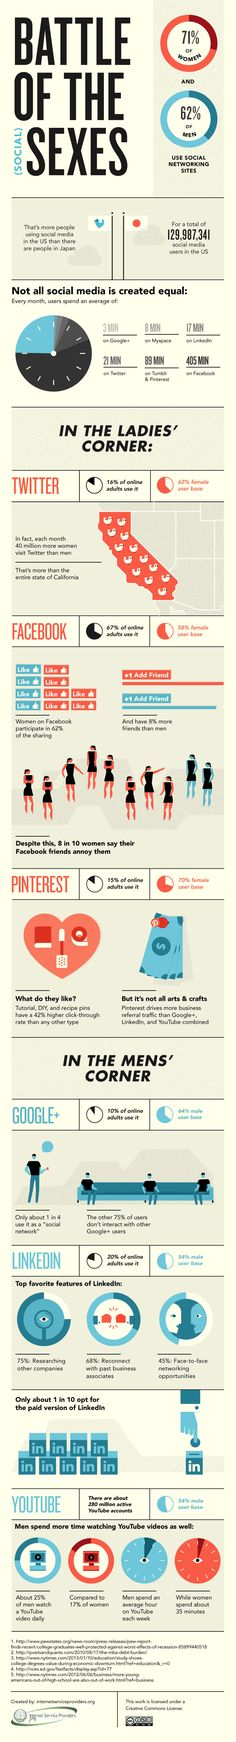 Infographic: Social Medias Battle of the Sexes